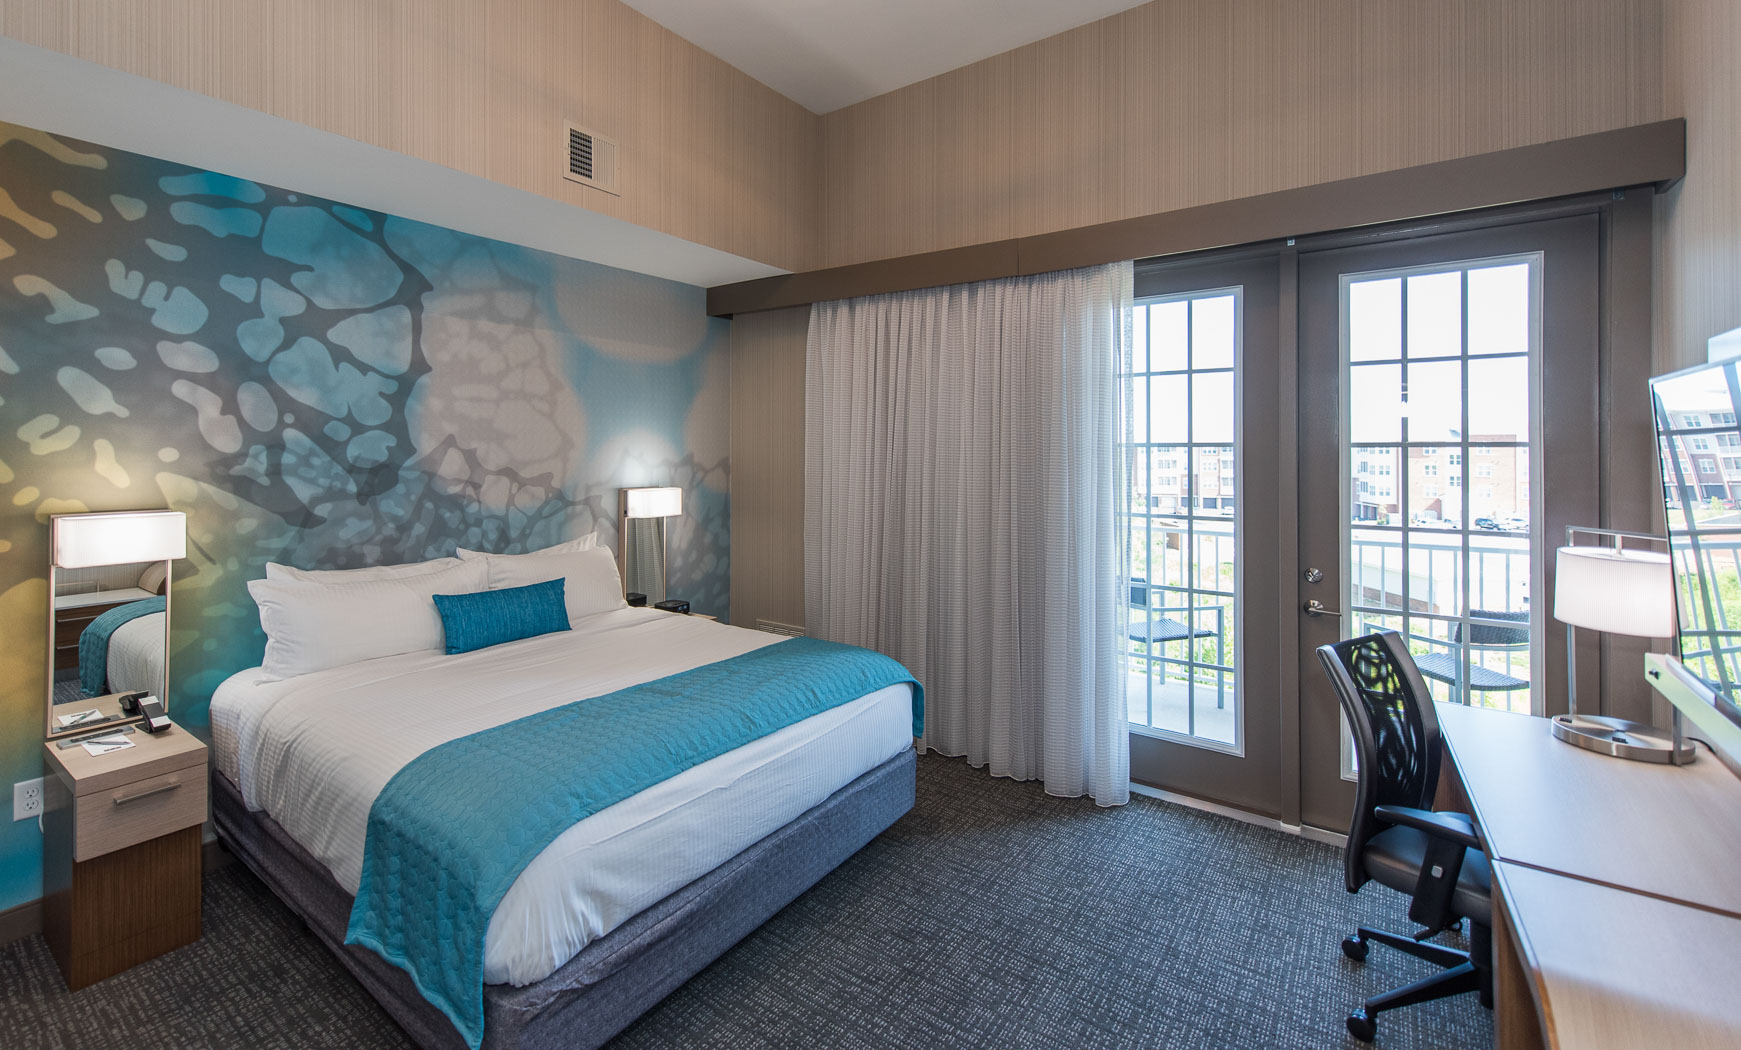 2 Double Beds with white linens and turquoise blue pillow and sham. The wall behind the bed have a wallpaper that include white, blue, yellow and grey's in the design. There is also a closet with a mirror door and shelving inside.